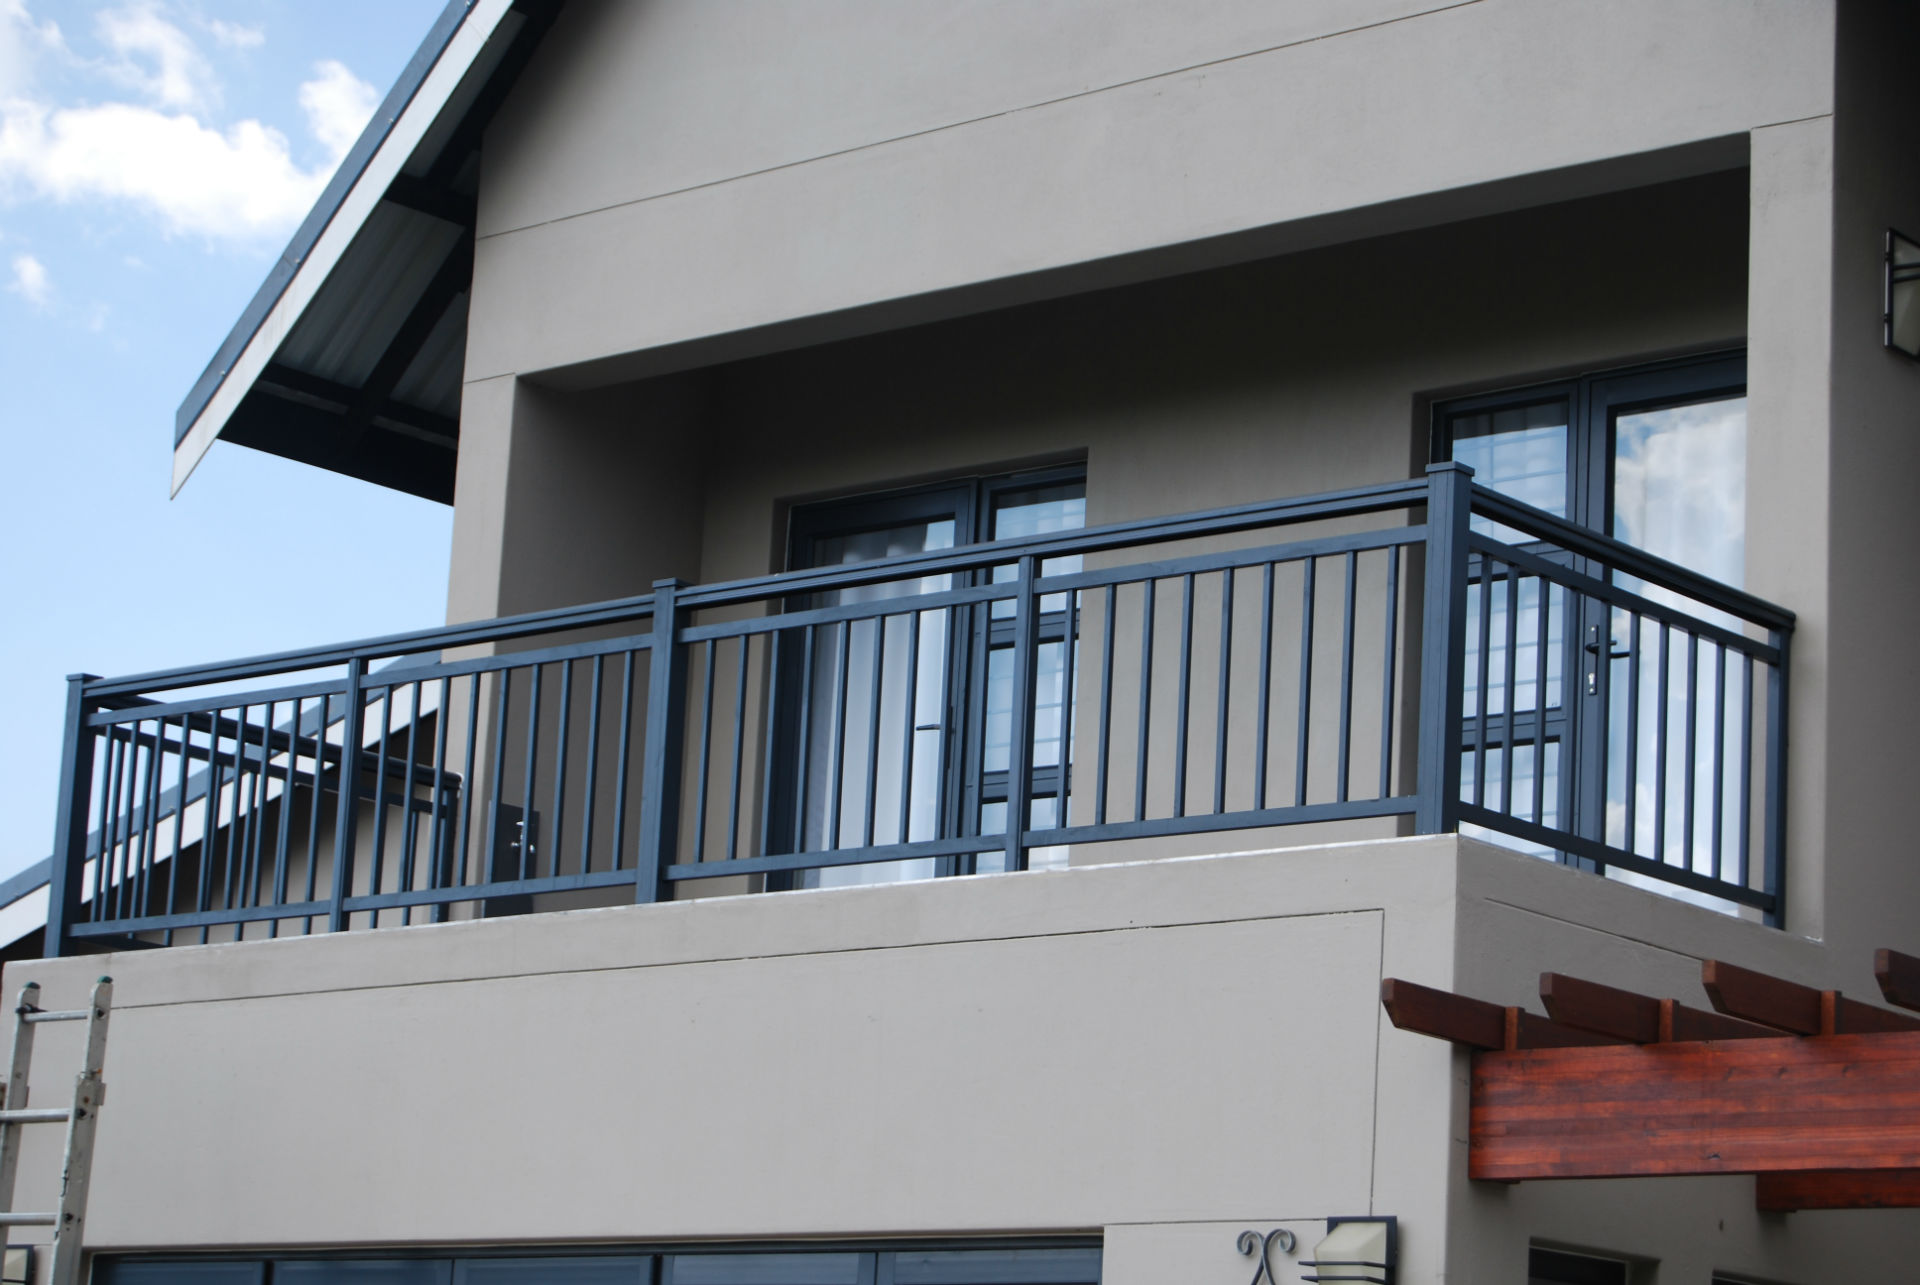 balustrade-with-aluminium-droppers-2-w19